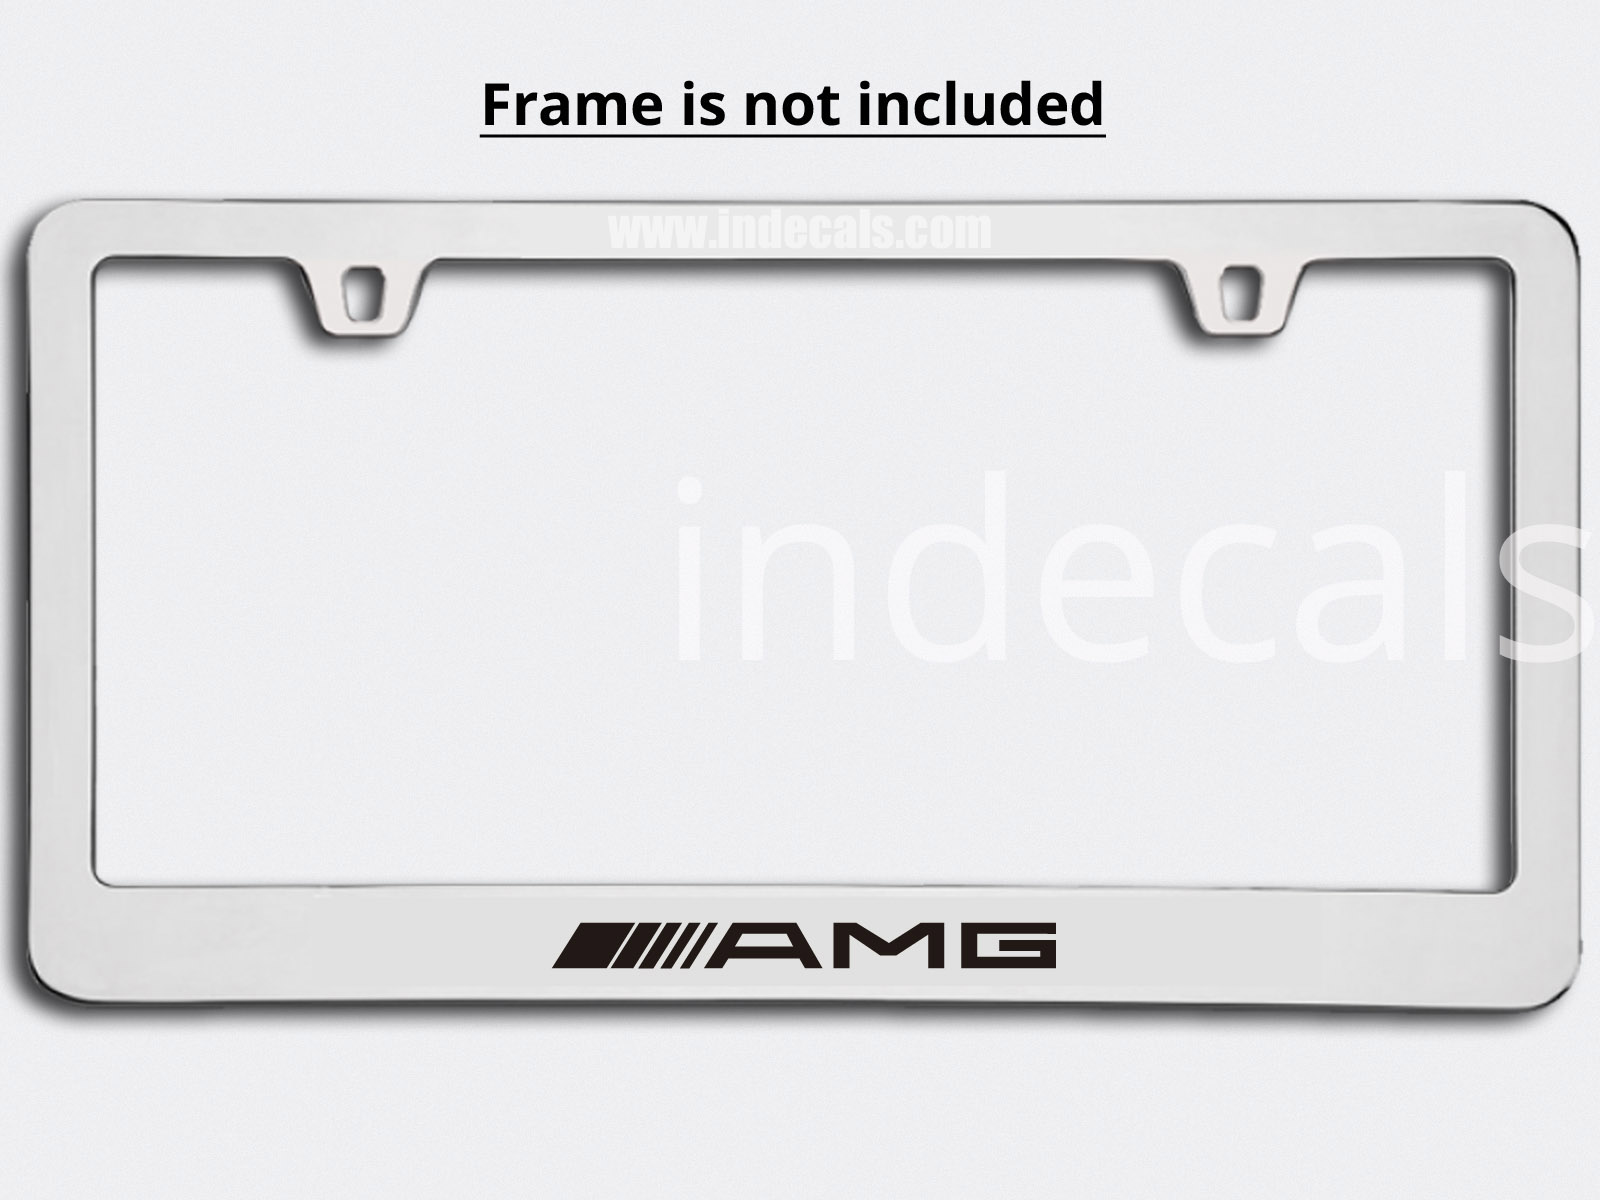 3 x AMG Stickers for Plate Frame - Black